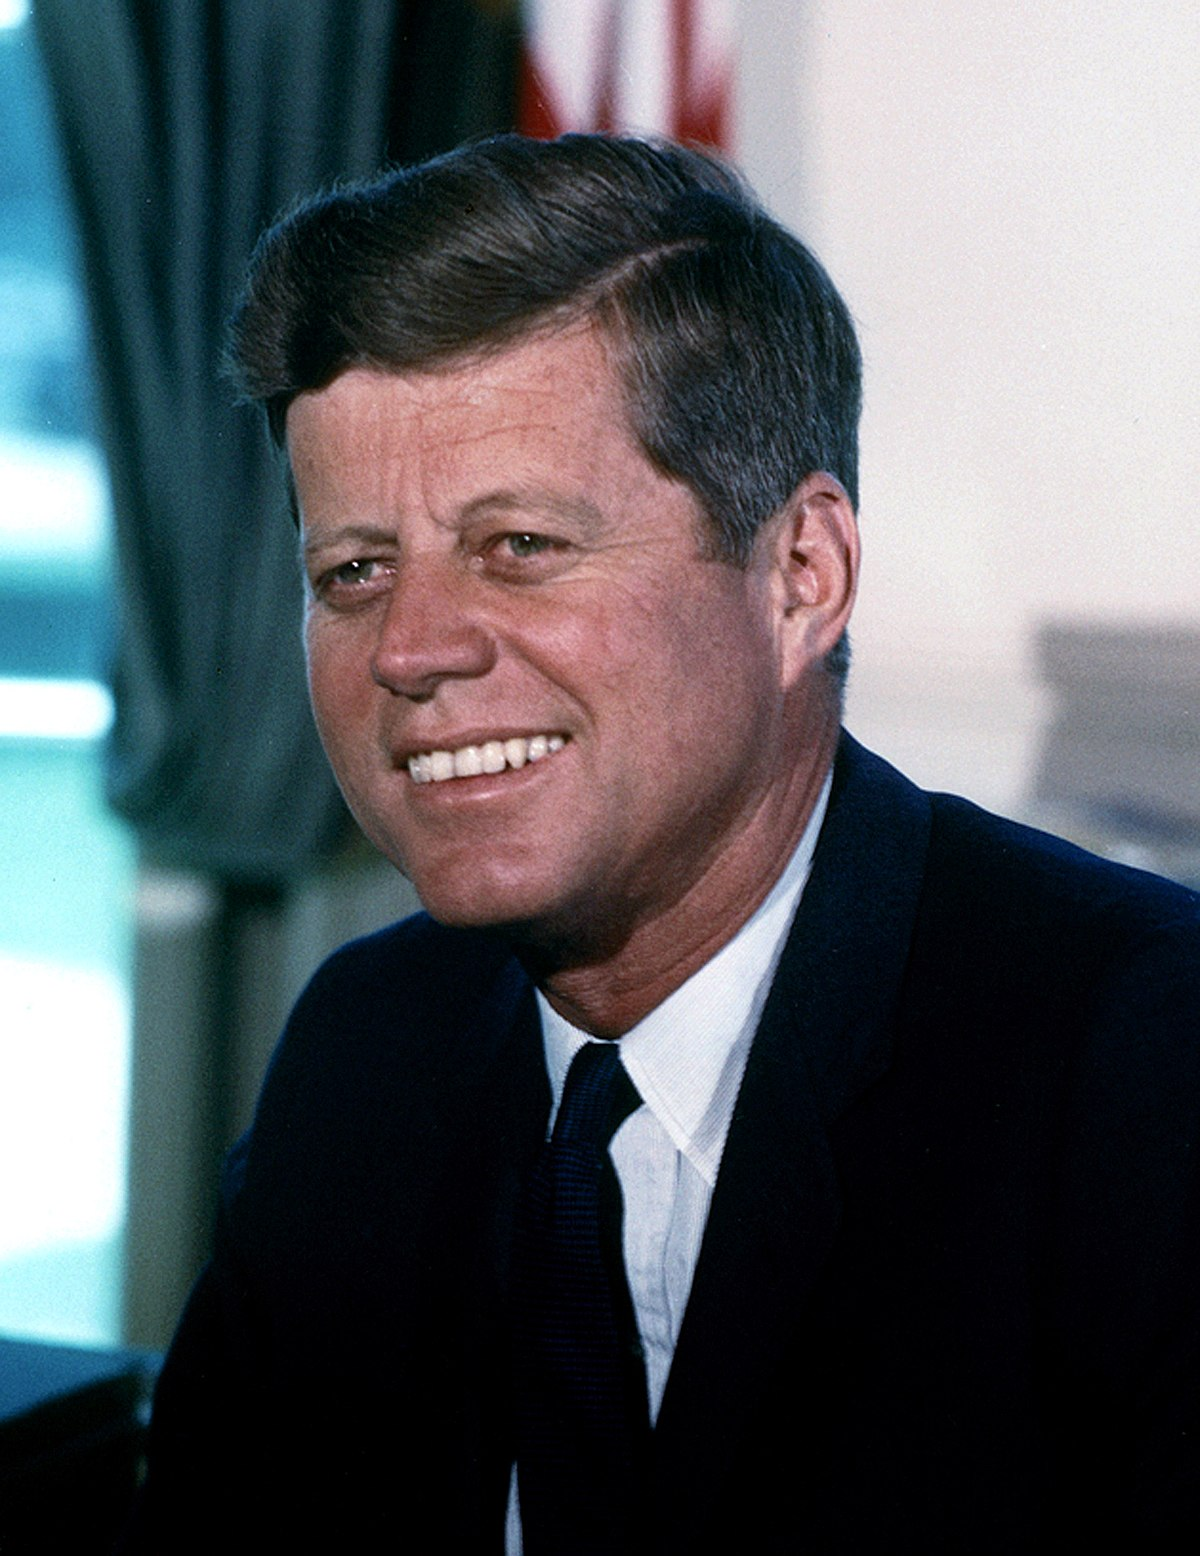 the life history of john fitzgerald kennedy the 35th president of the united states